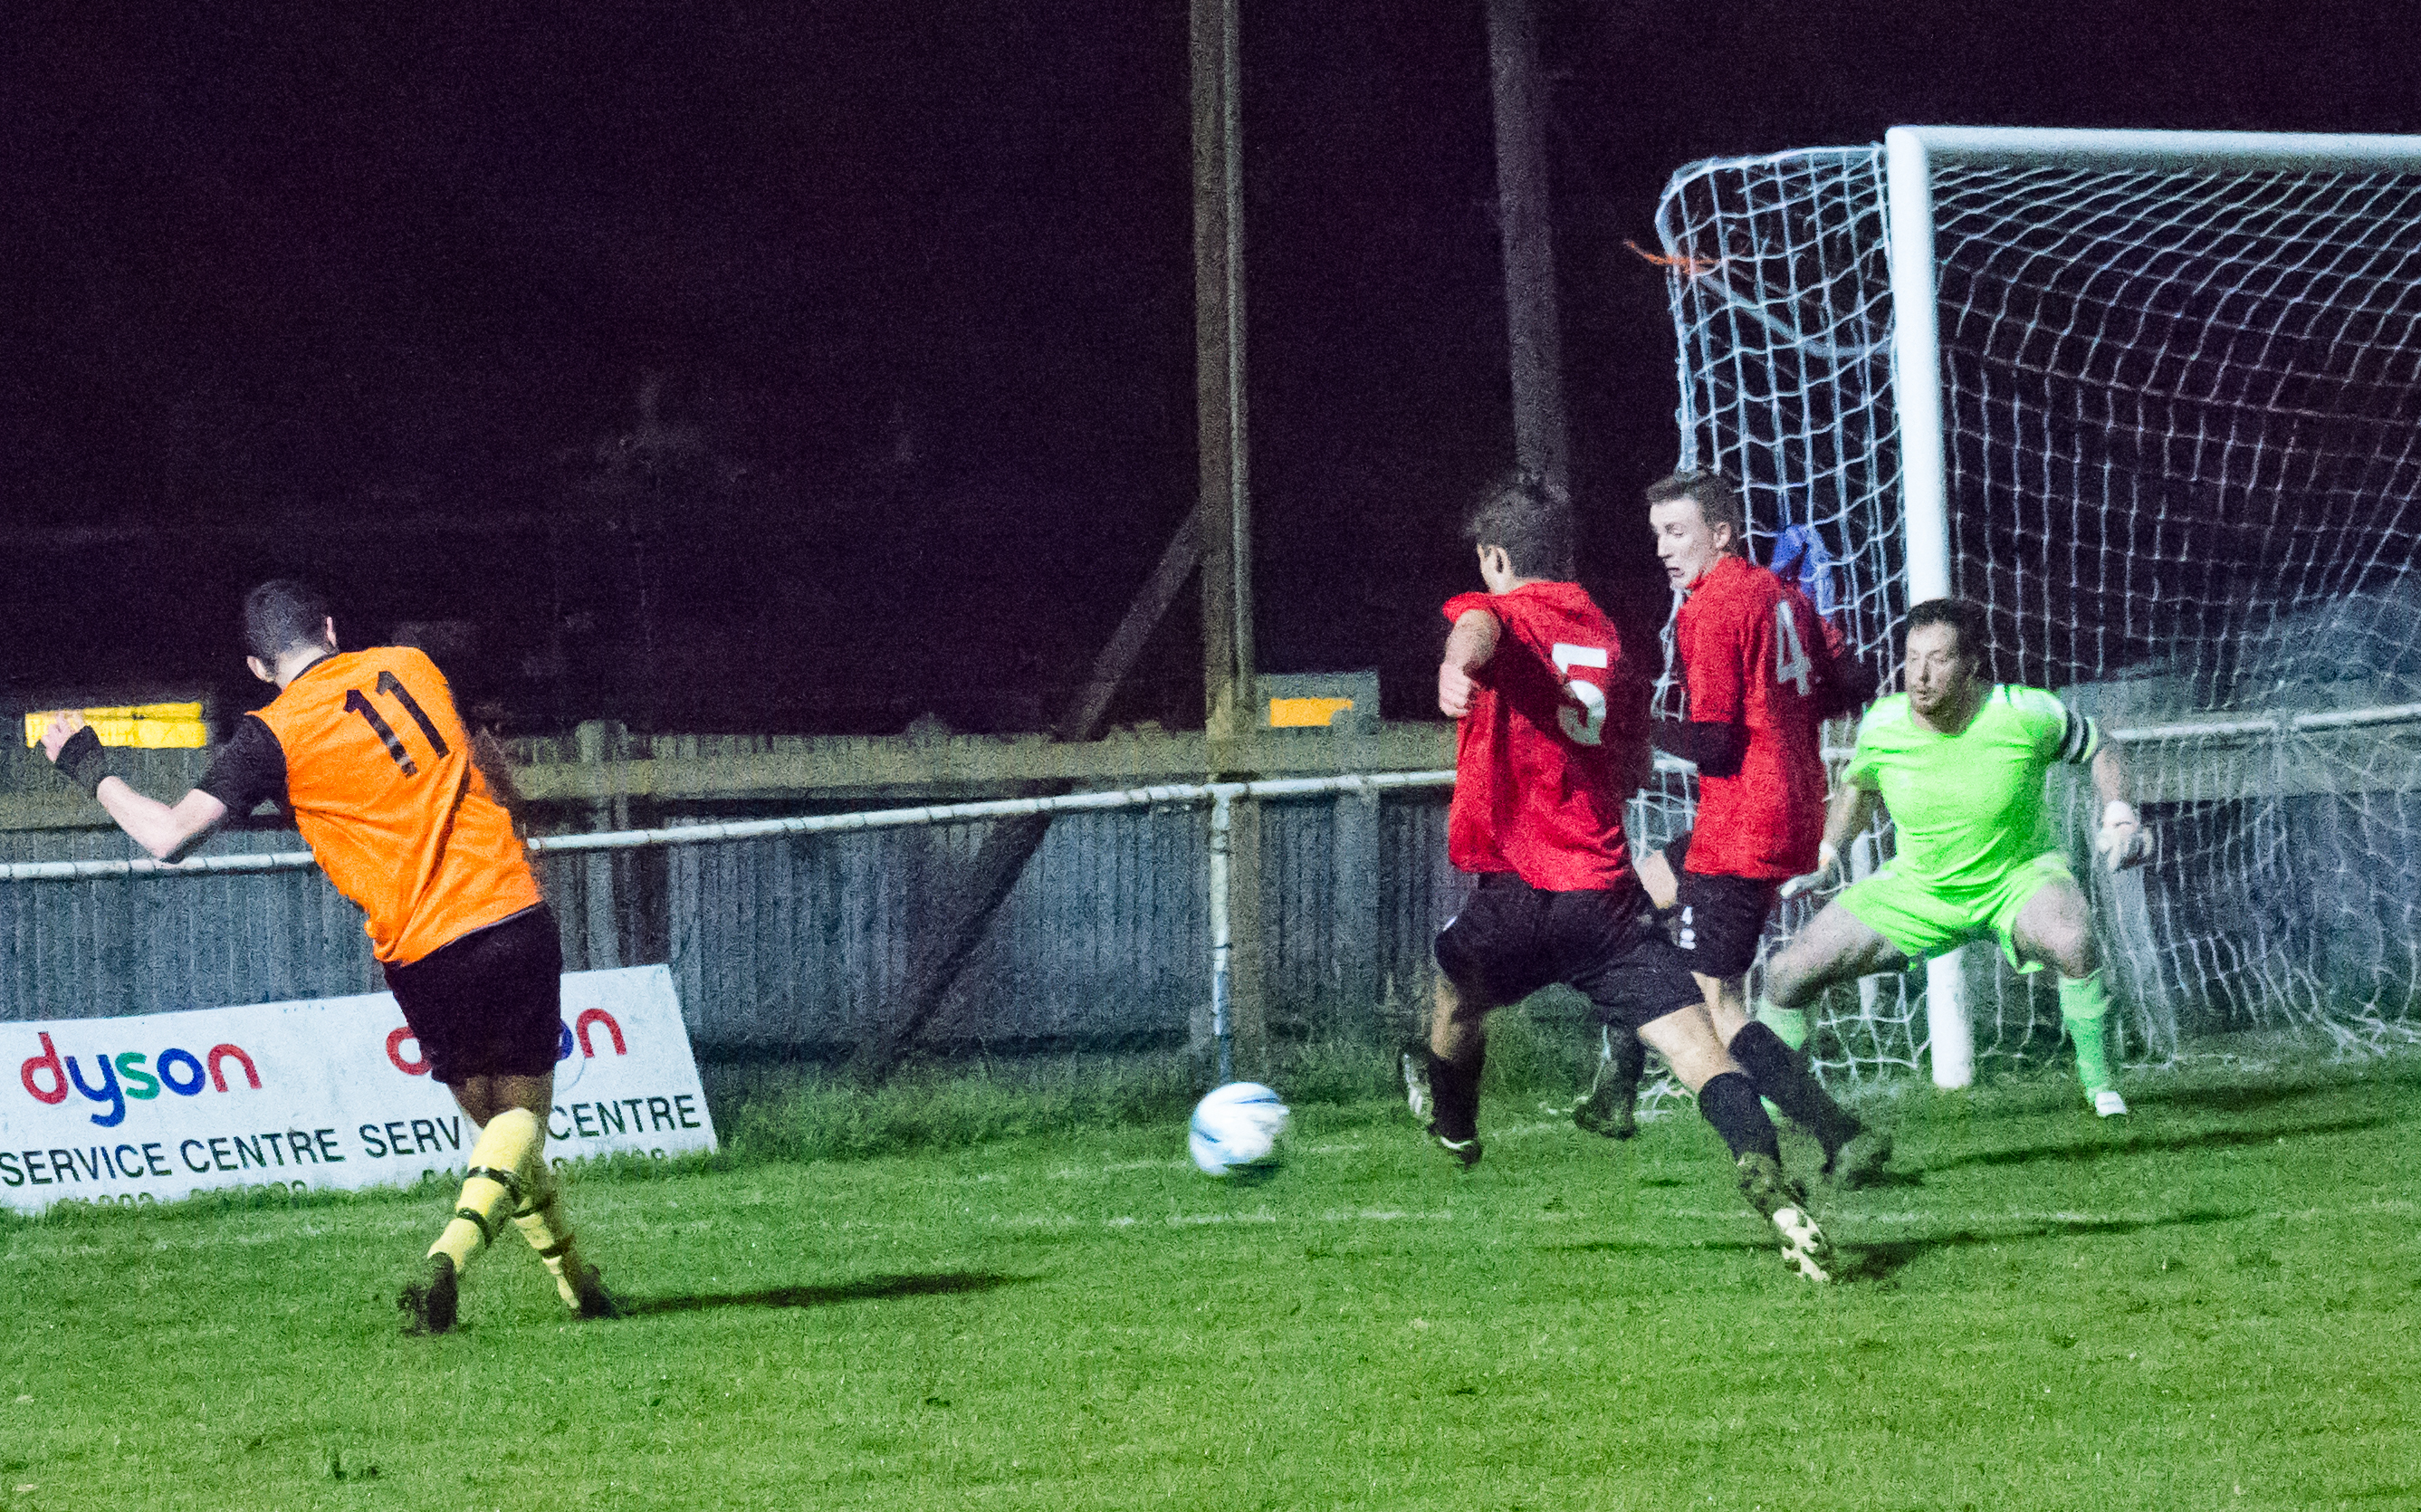 Mile Oak U21s vs Uckfield U21s 02.11.17 04